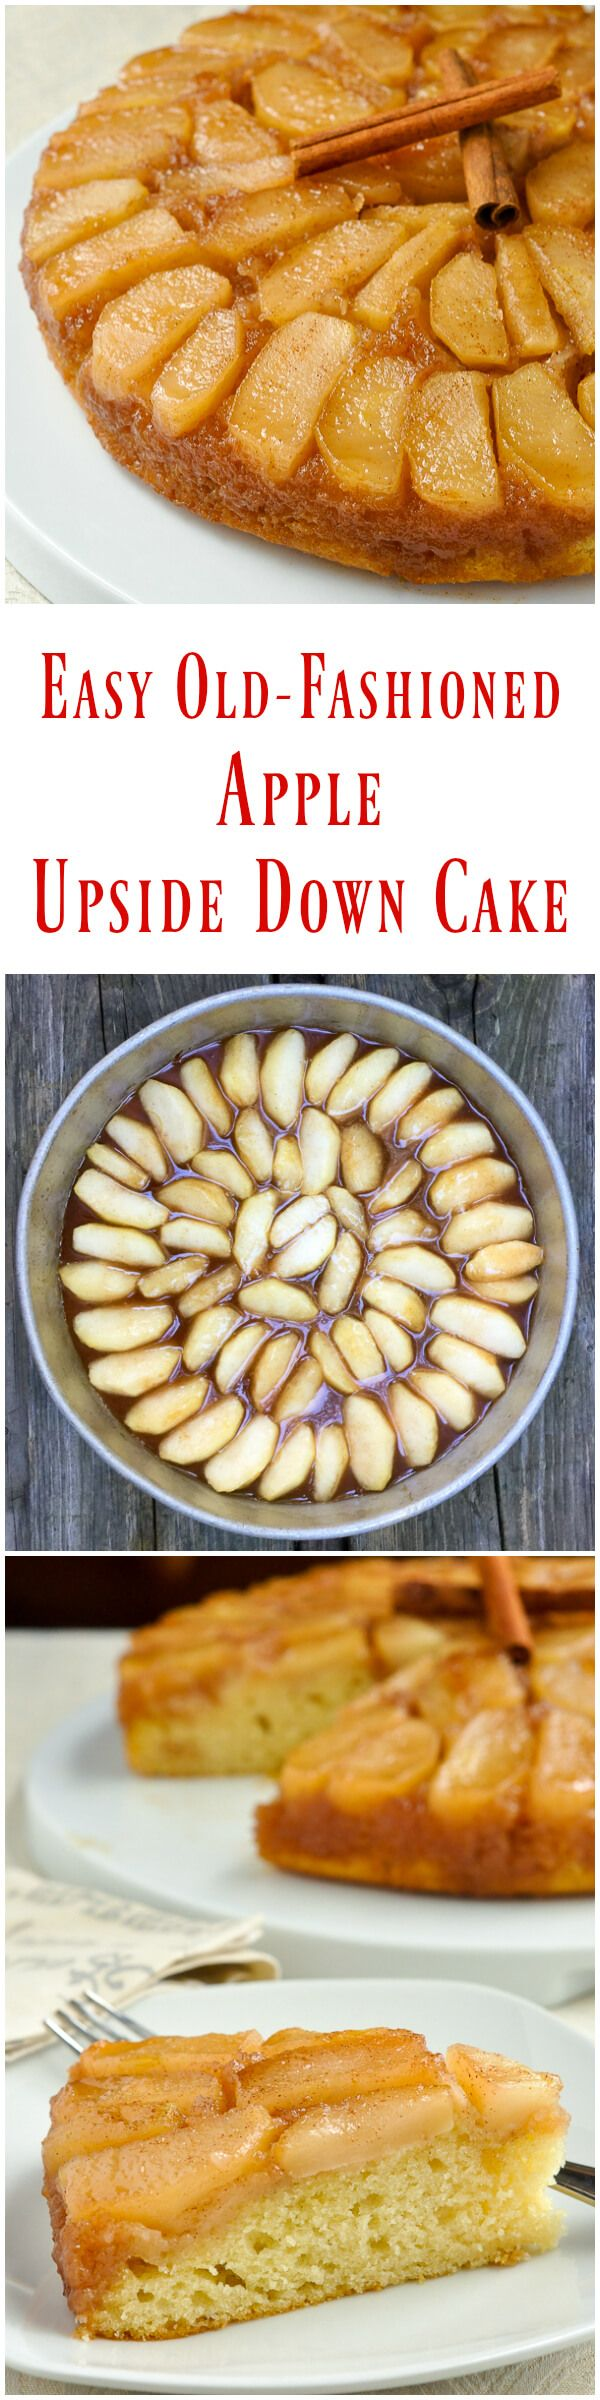 Old Fashioned Apple Upside Down Cake - a decades old family recipe that uses very simple ingredients to create a comfort food dessert that everyone will love; a classic Autumn dessert that's only improved by a big scoop of vanilla ice cream.